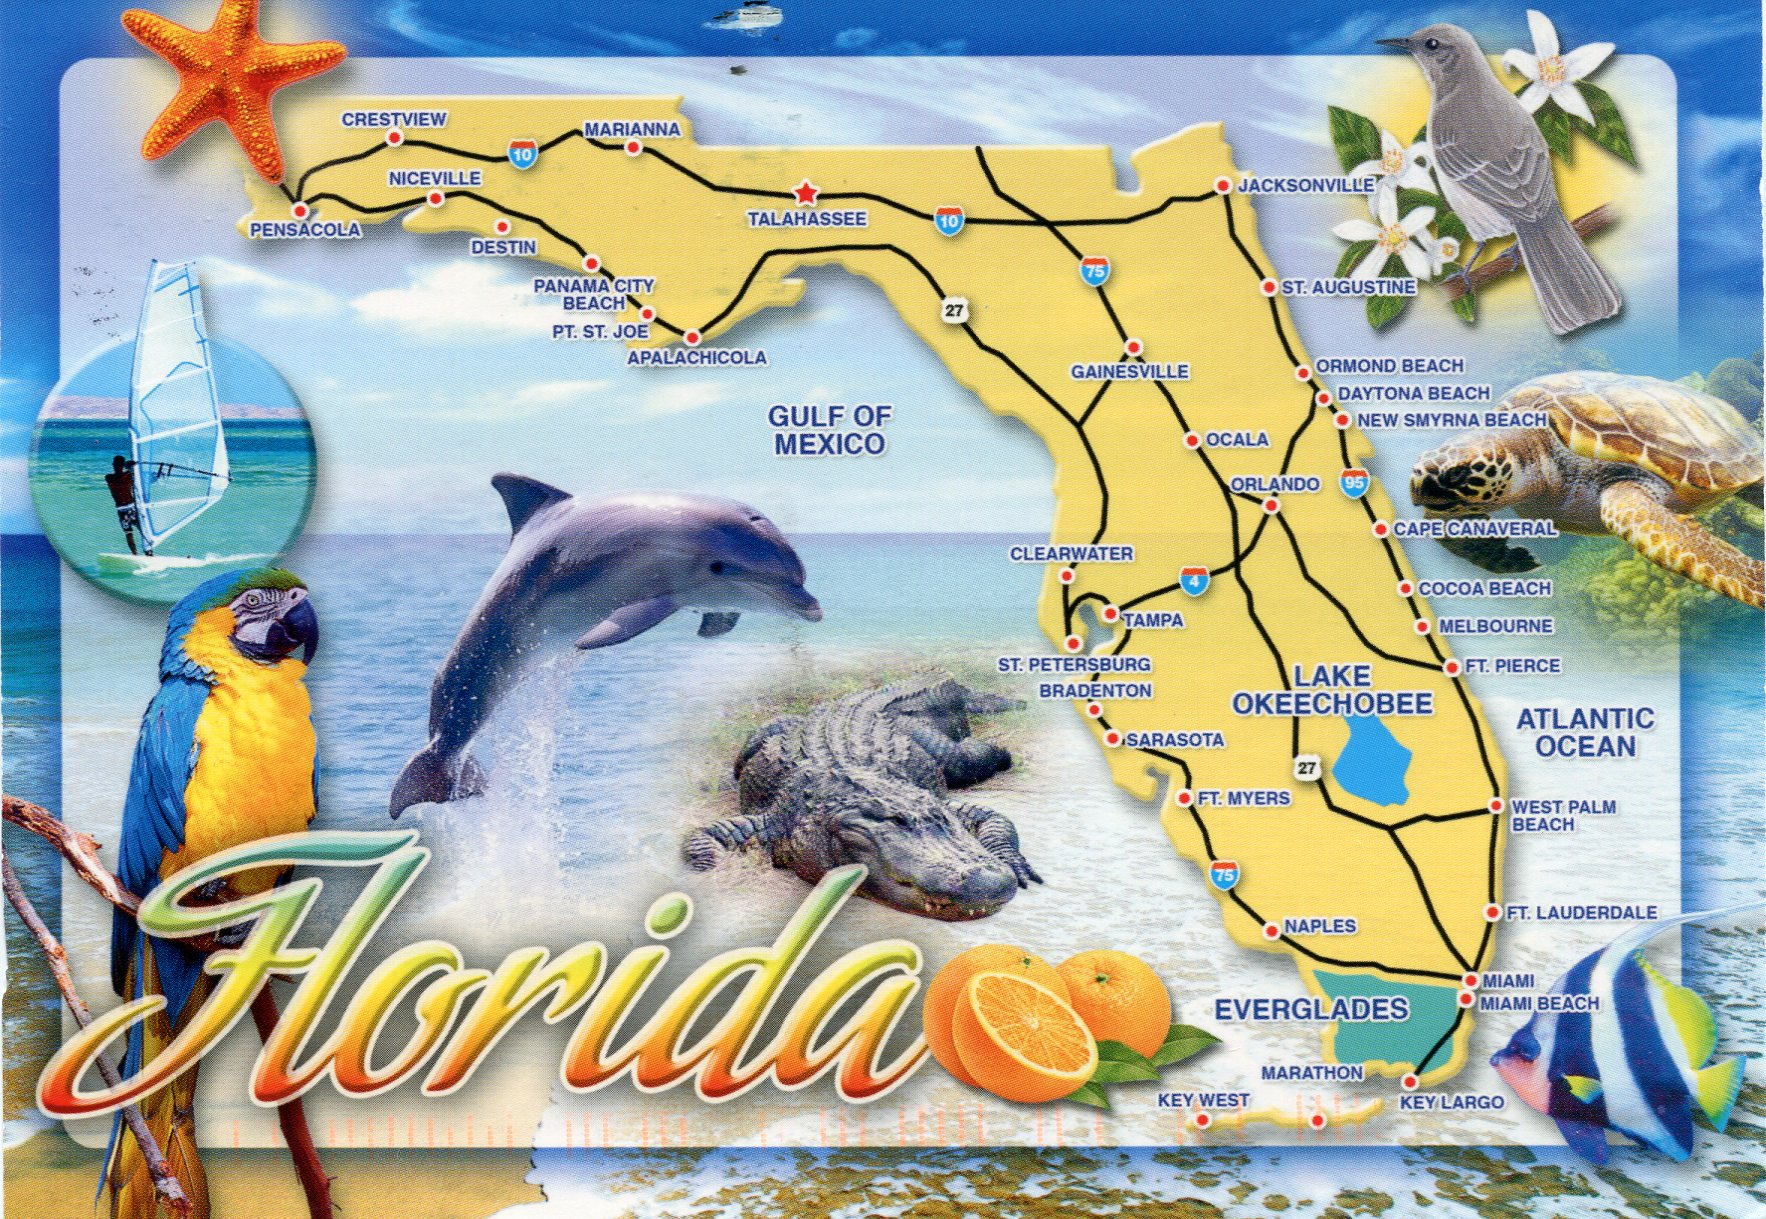 City Of Cape Coral Website